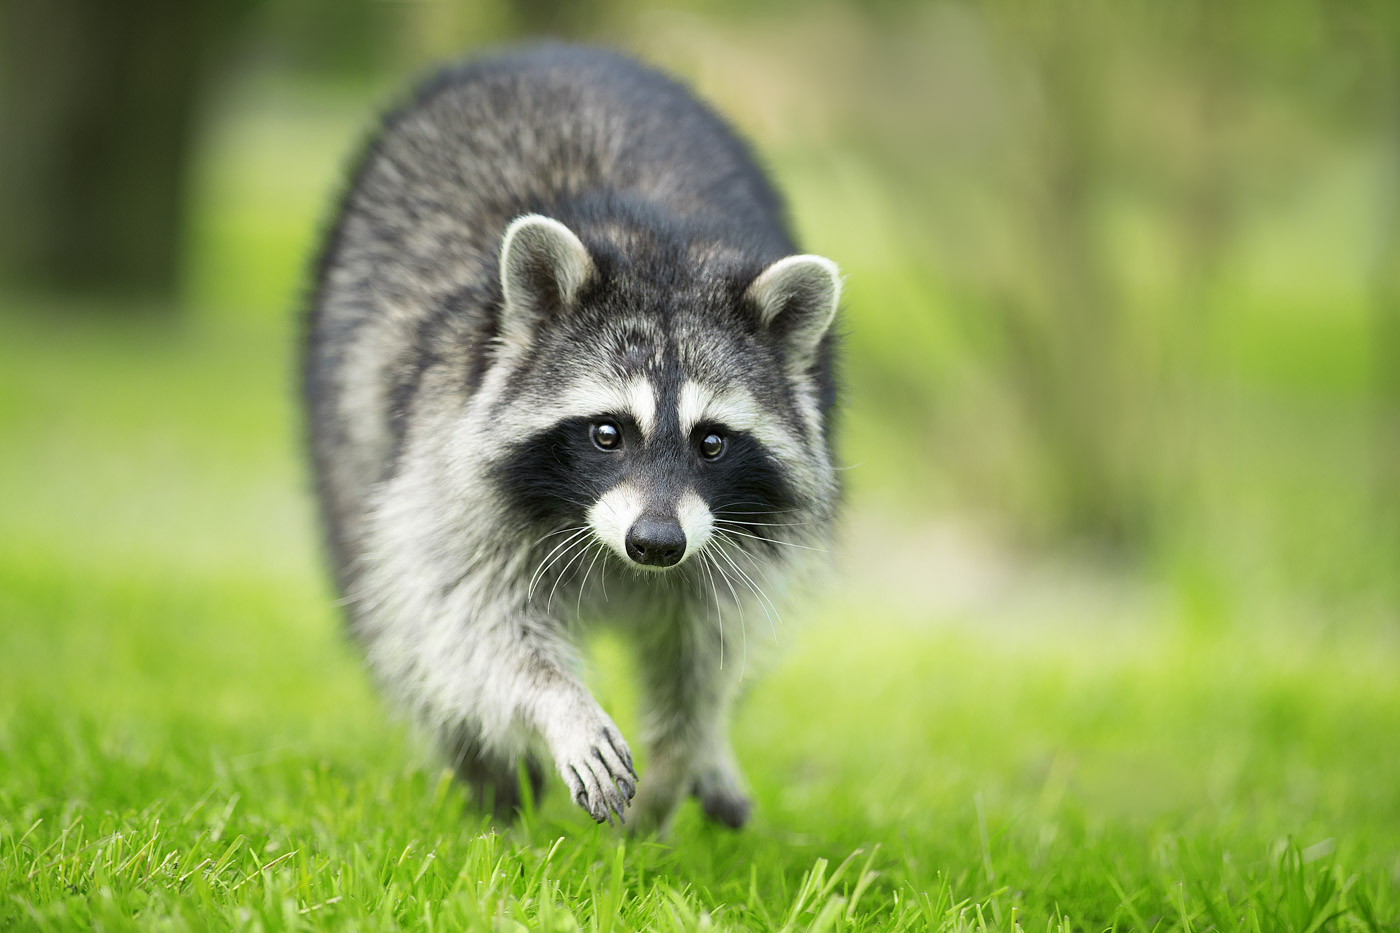 The beast who defeated a man more, a raccoon, led, sense, a lot, man, man, beast, animals, regions, excellent, settled down, delivers, often, troubles, to local residents, Well done, By the way, prefix